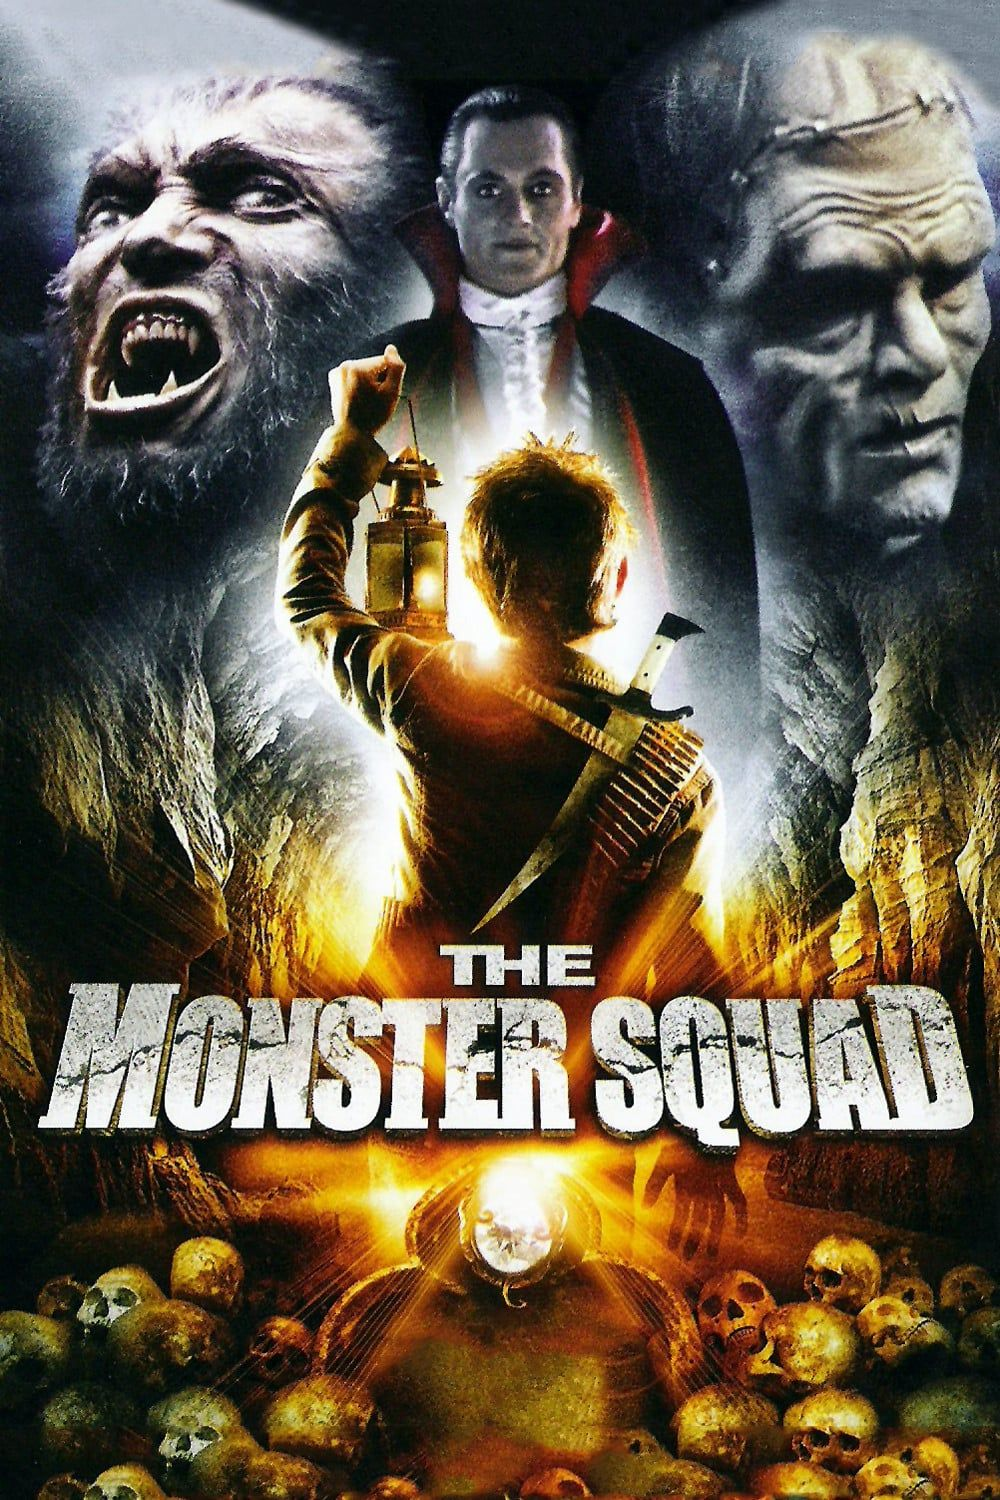 .The Monster Squad FULL MOVIE Streaming Online in HD720p